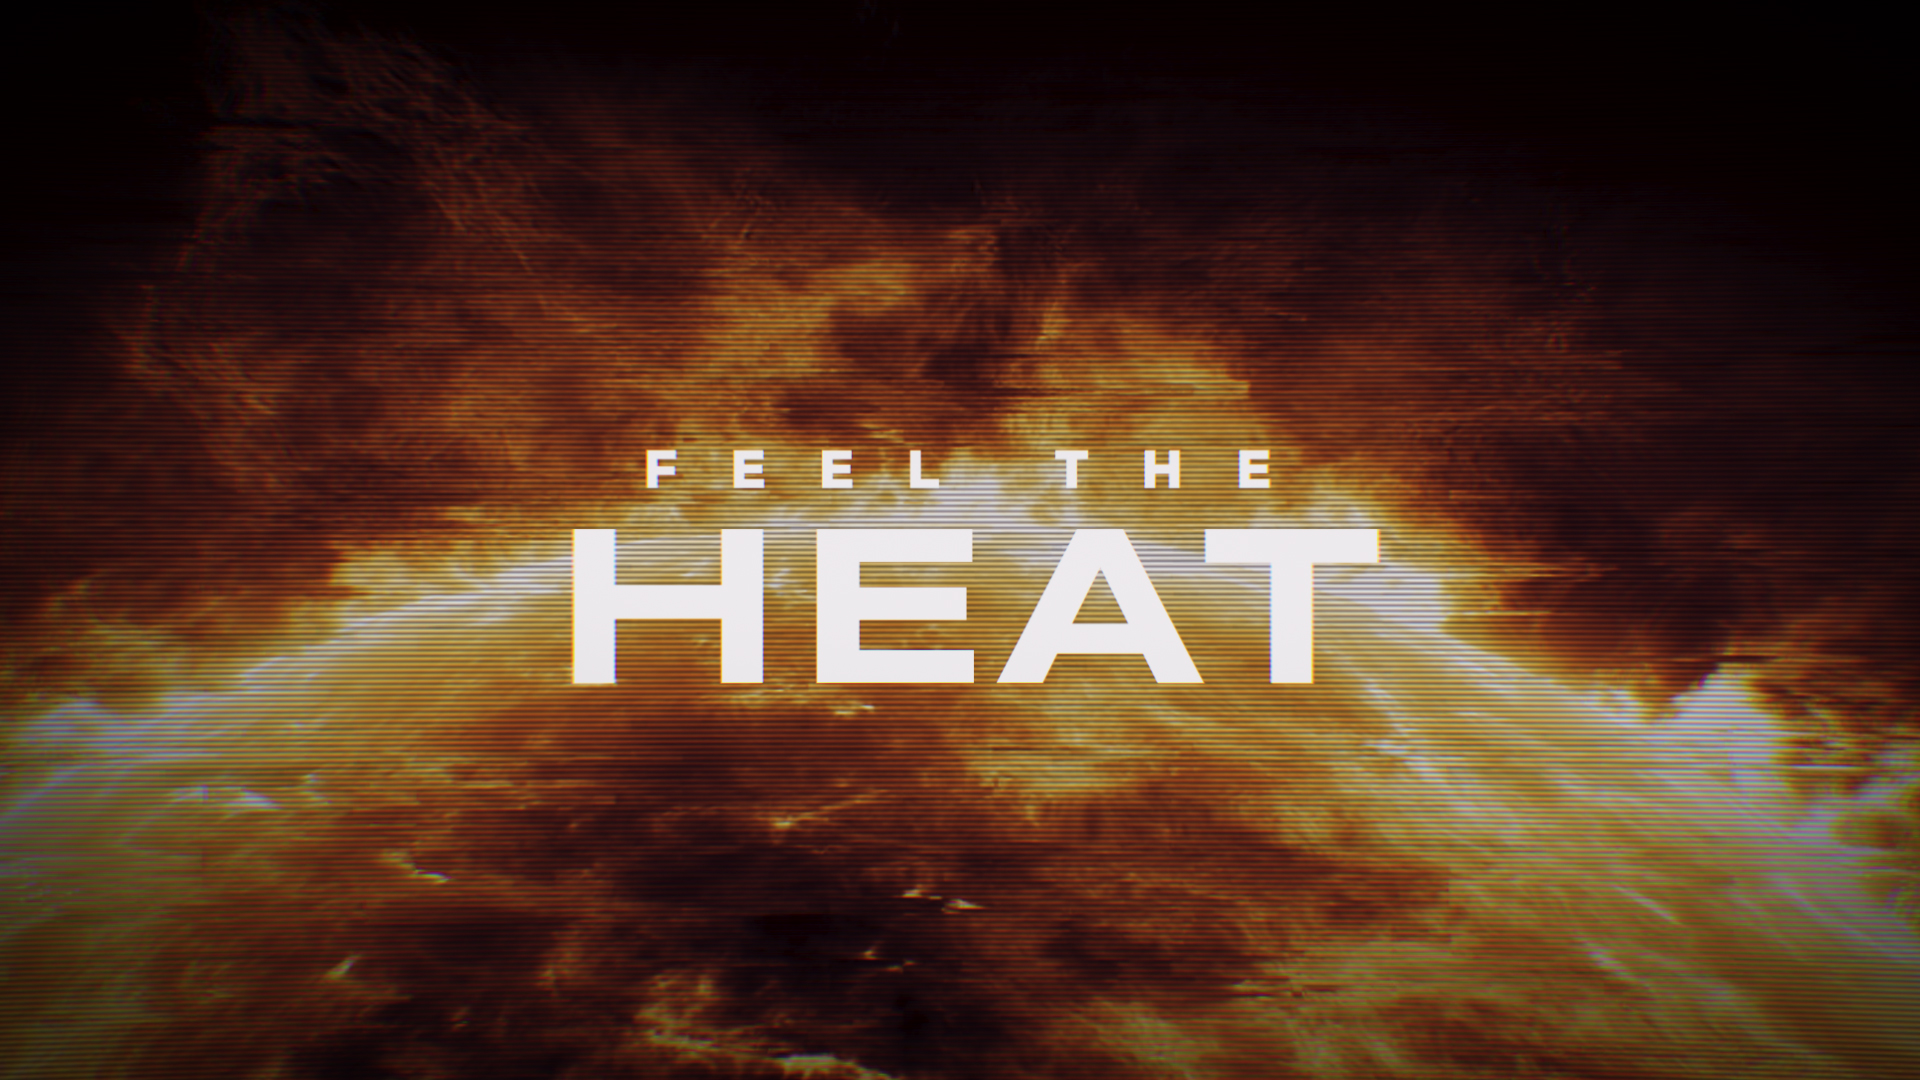 burning sun with text that reads 'feel the heat'